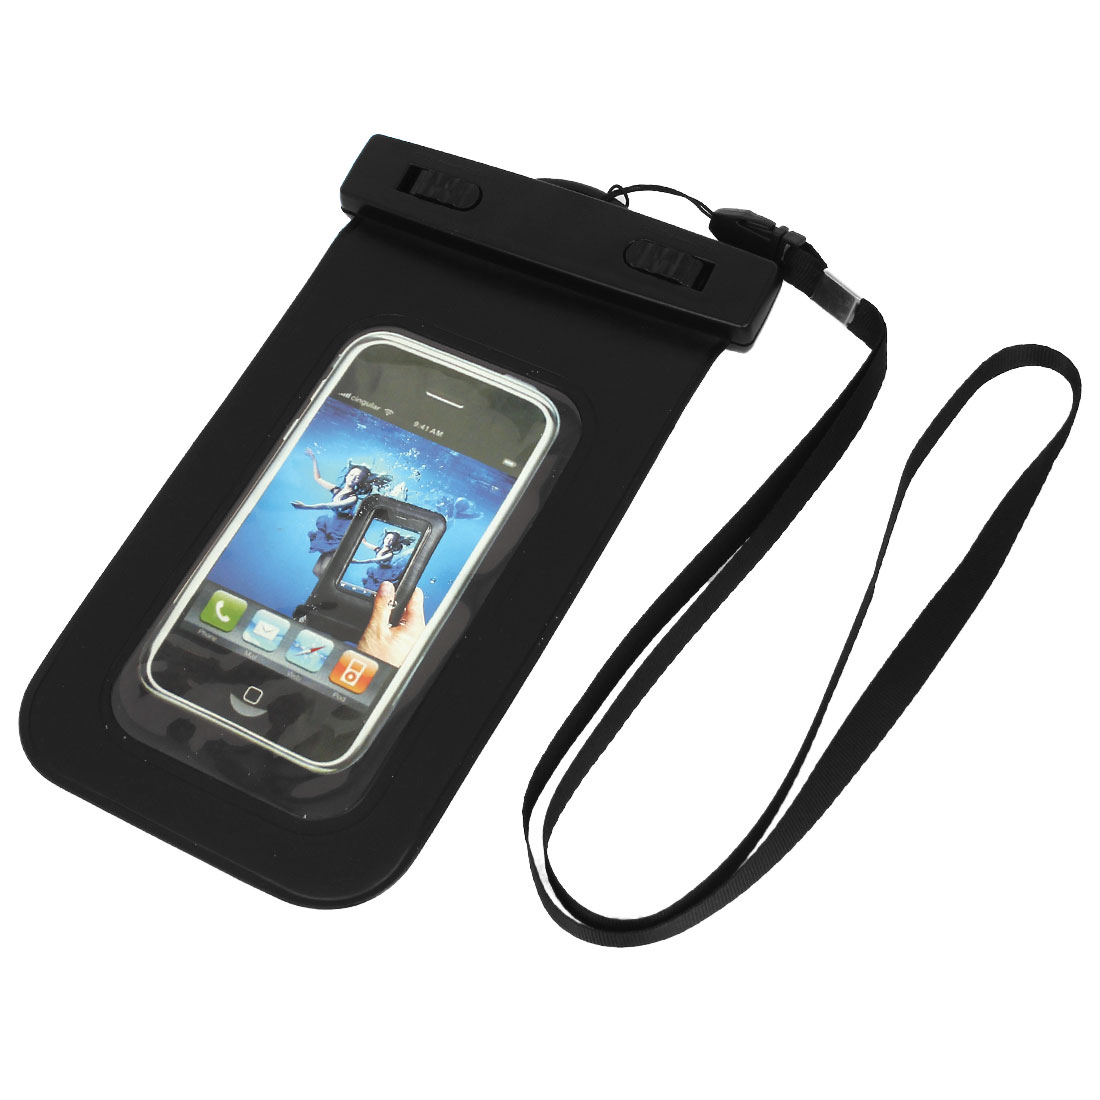 "Waterproof Pool Pouch Bag Case Black for 4.5"" Cell Phone w Neck Strap"